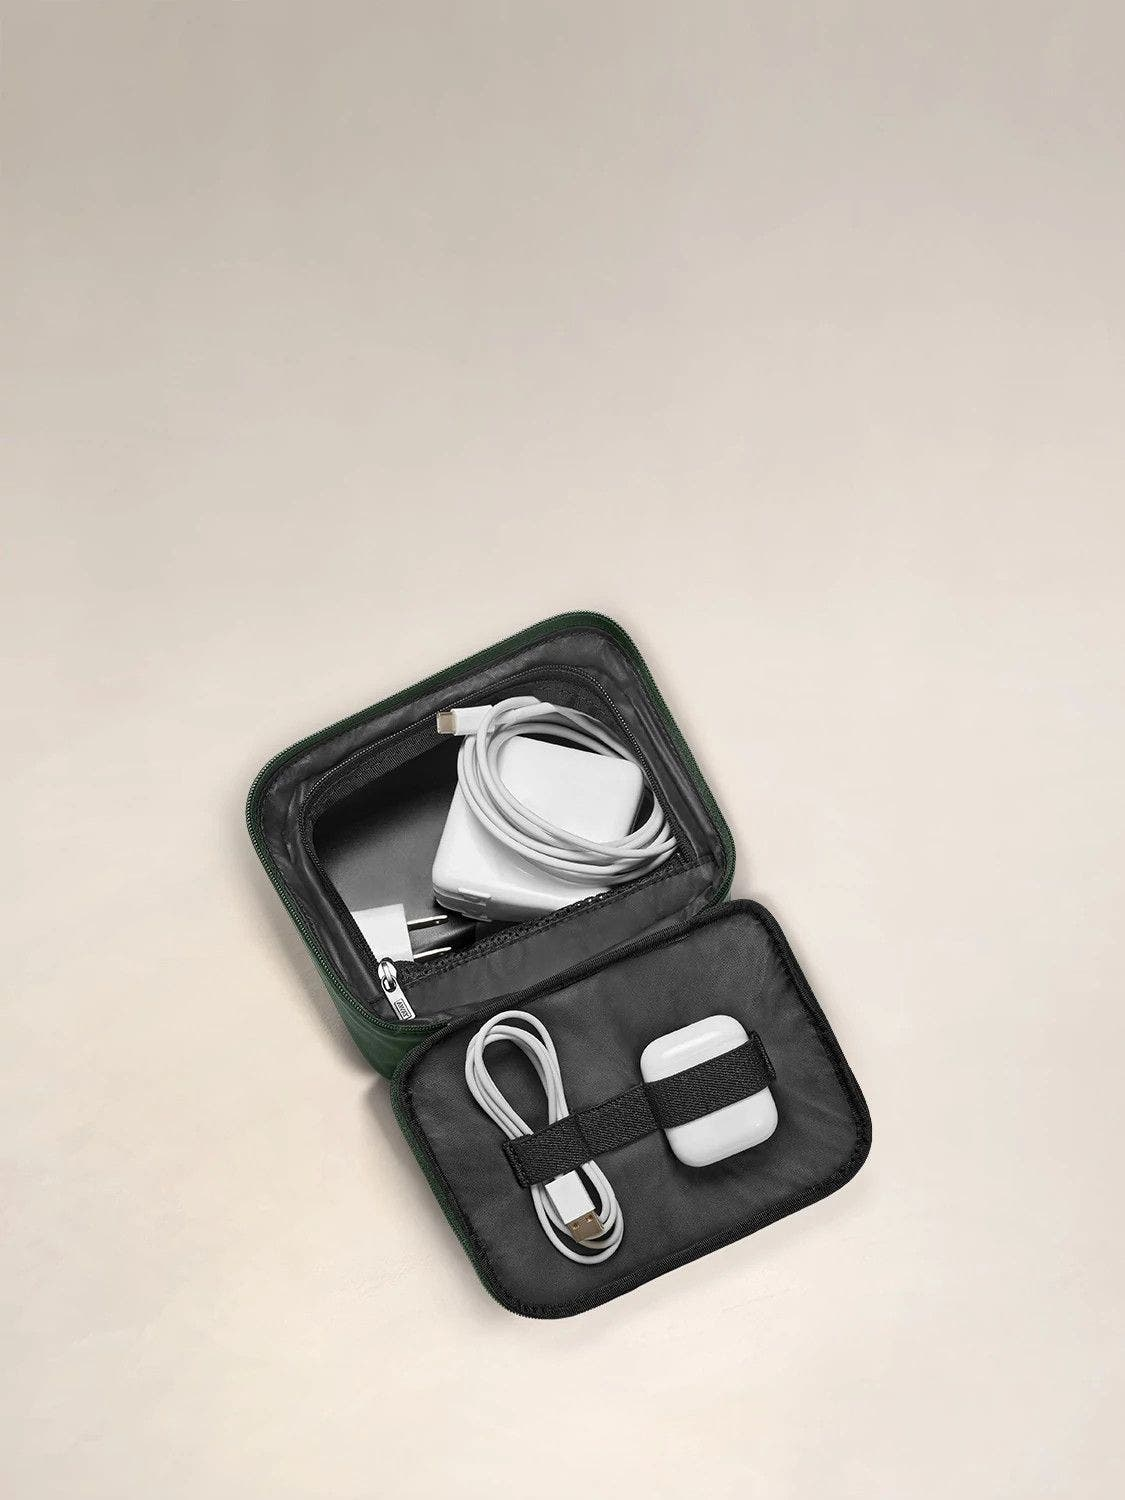 Inside view of a travel tech organizer with a white charger, ipod case and usb cord packed in its pockets.